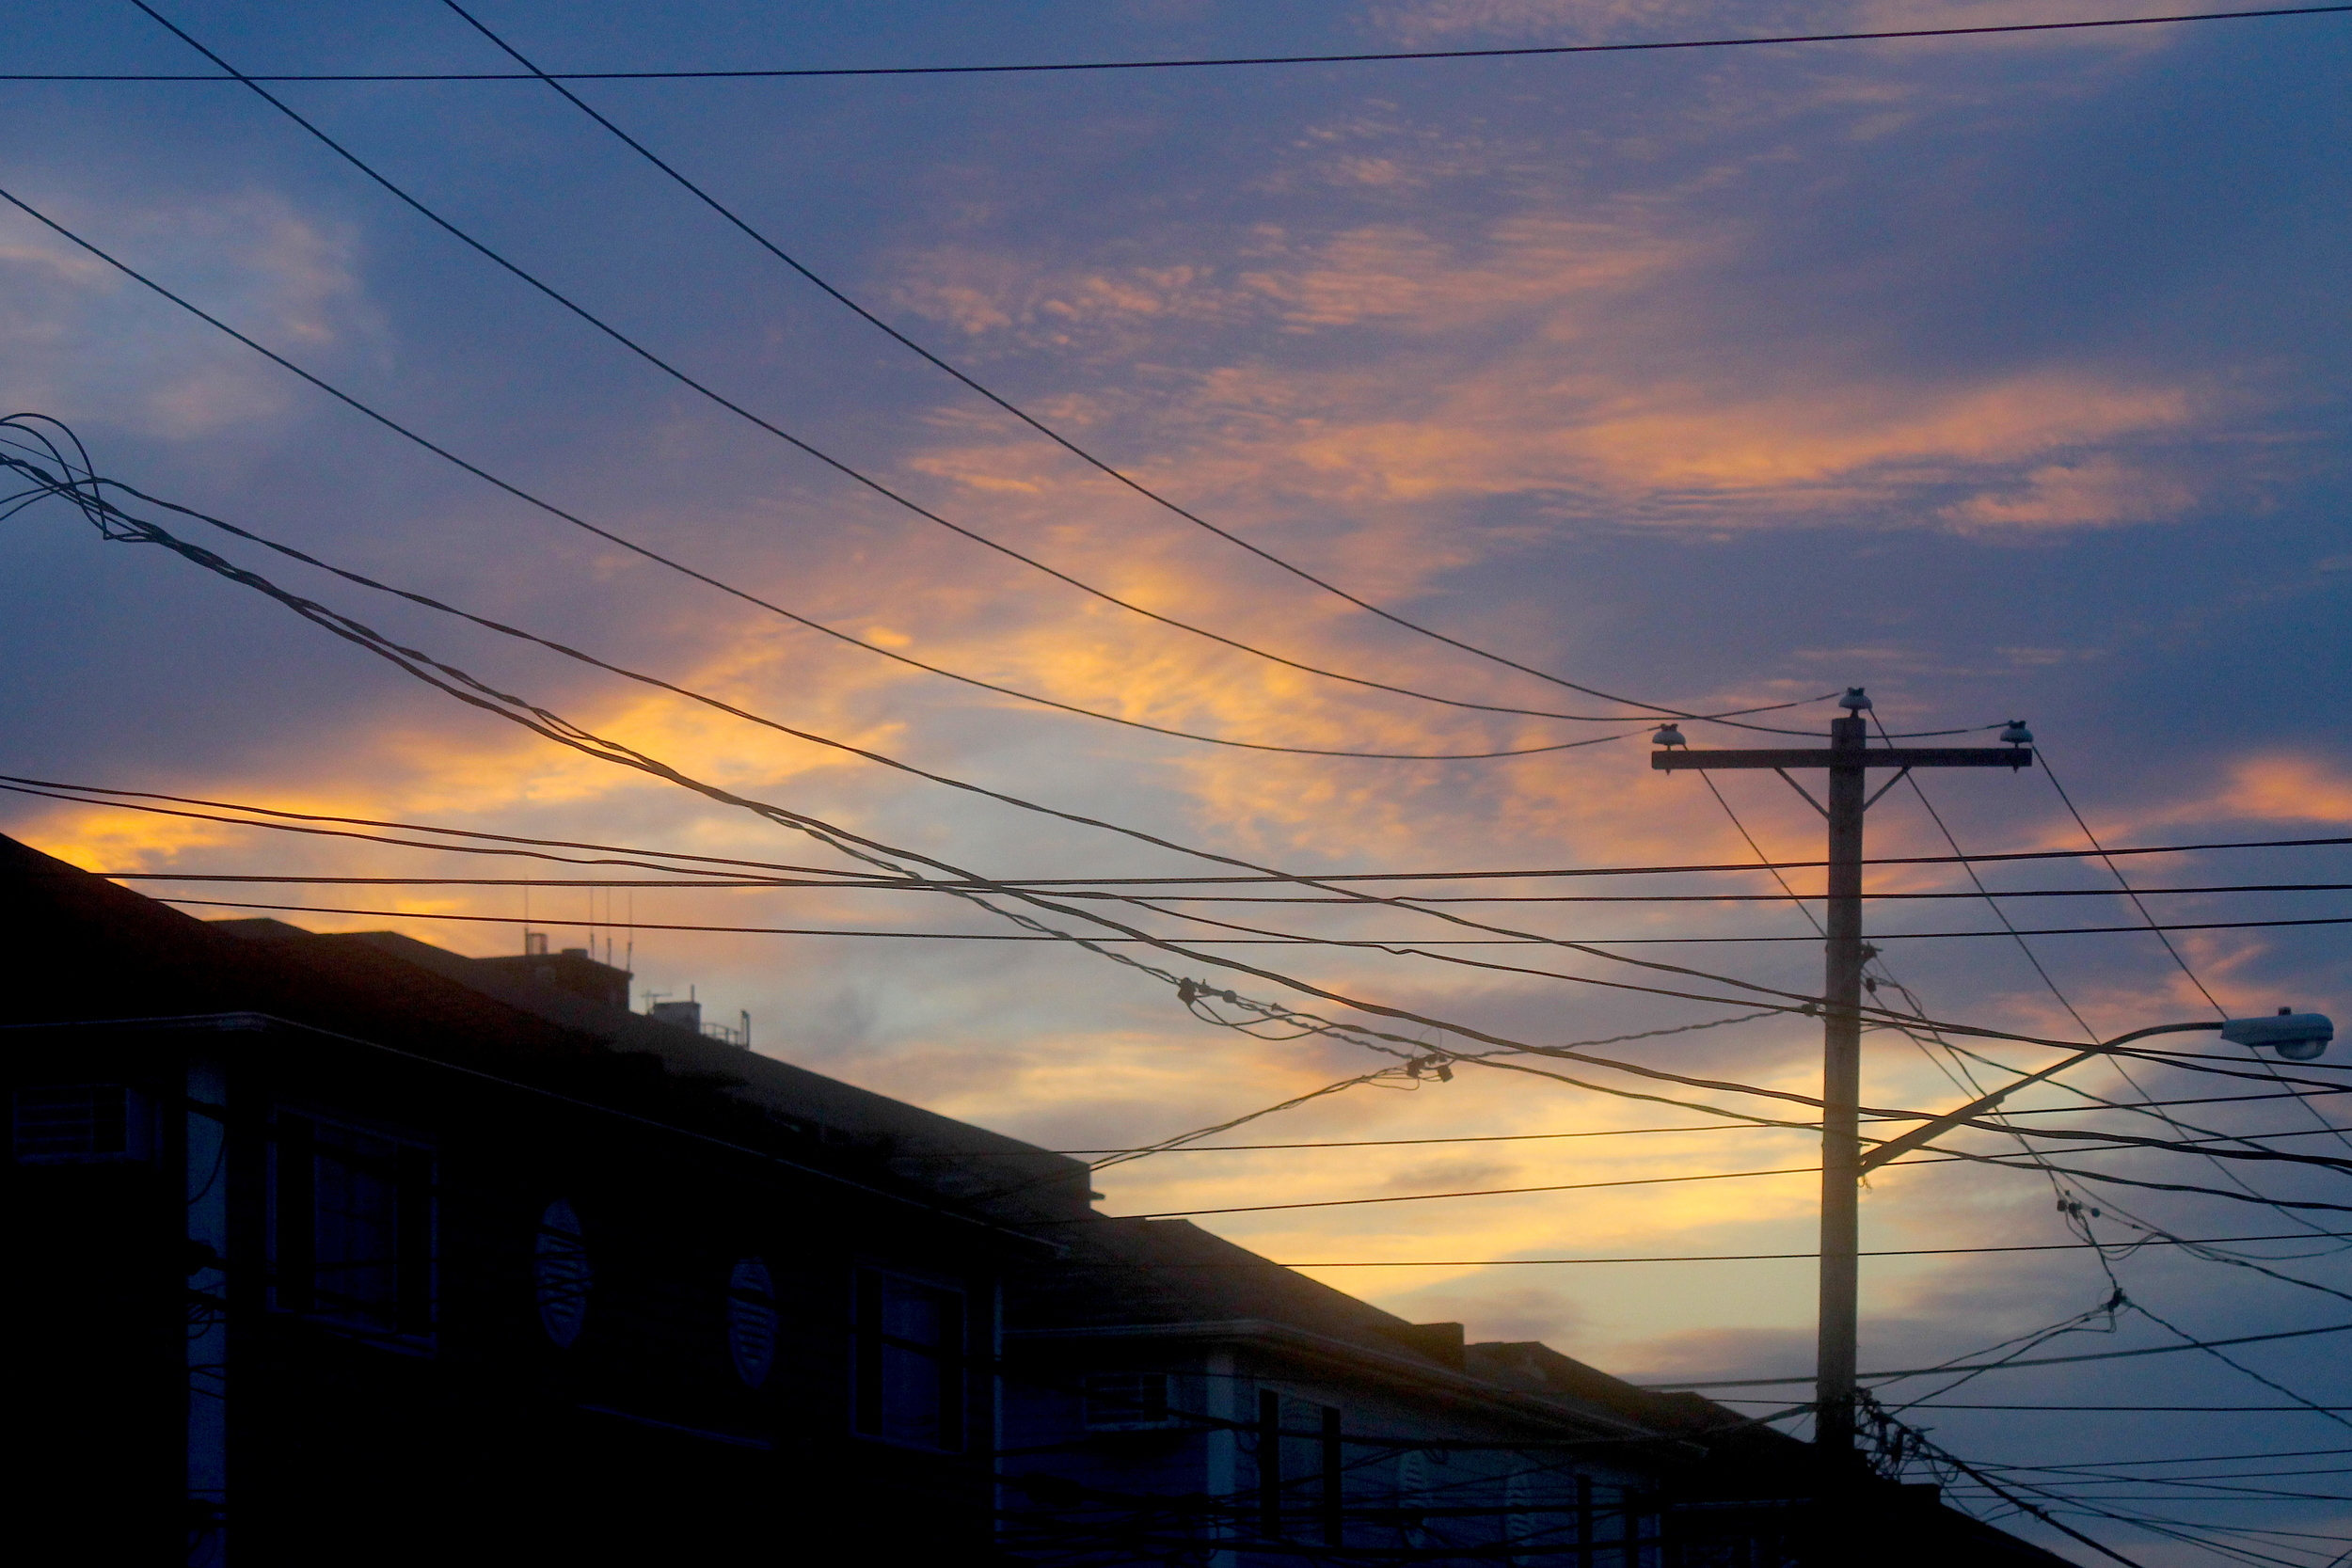 Sunset Over Rockaway Houses